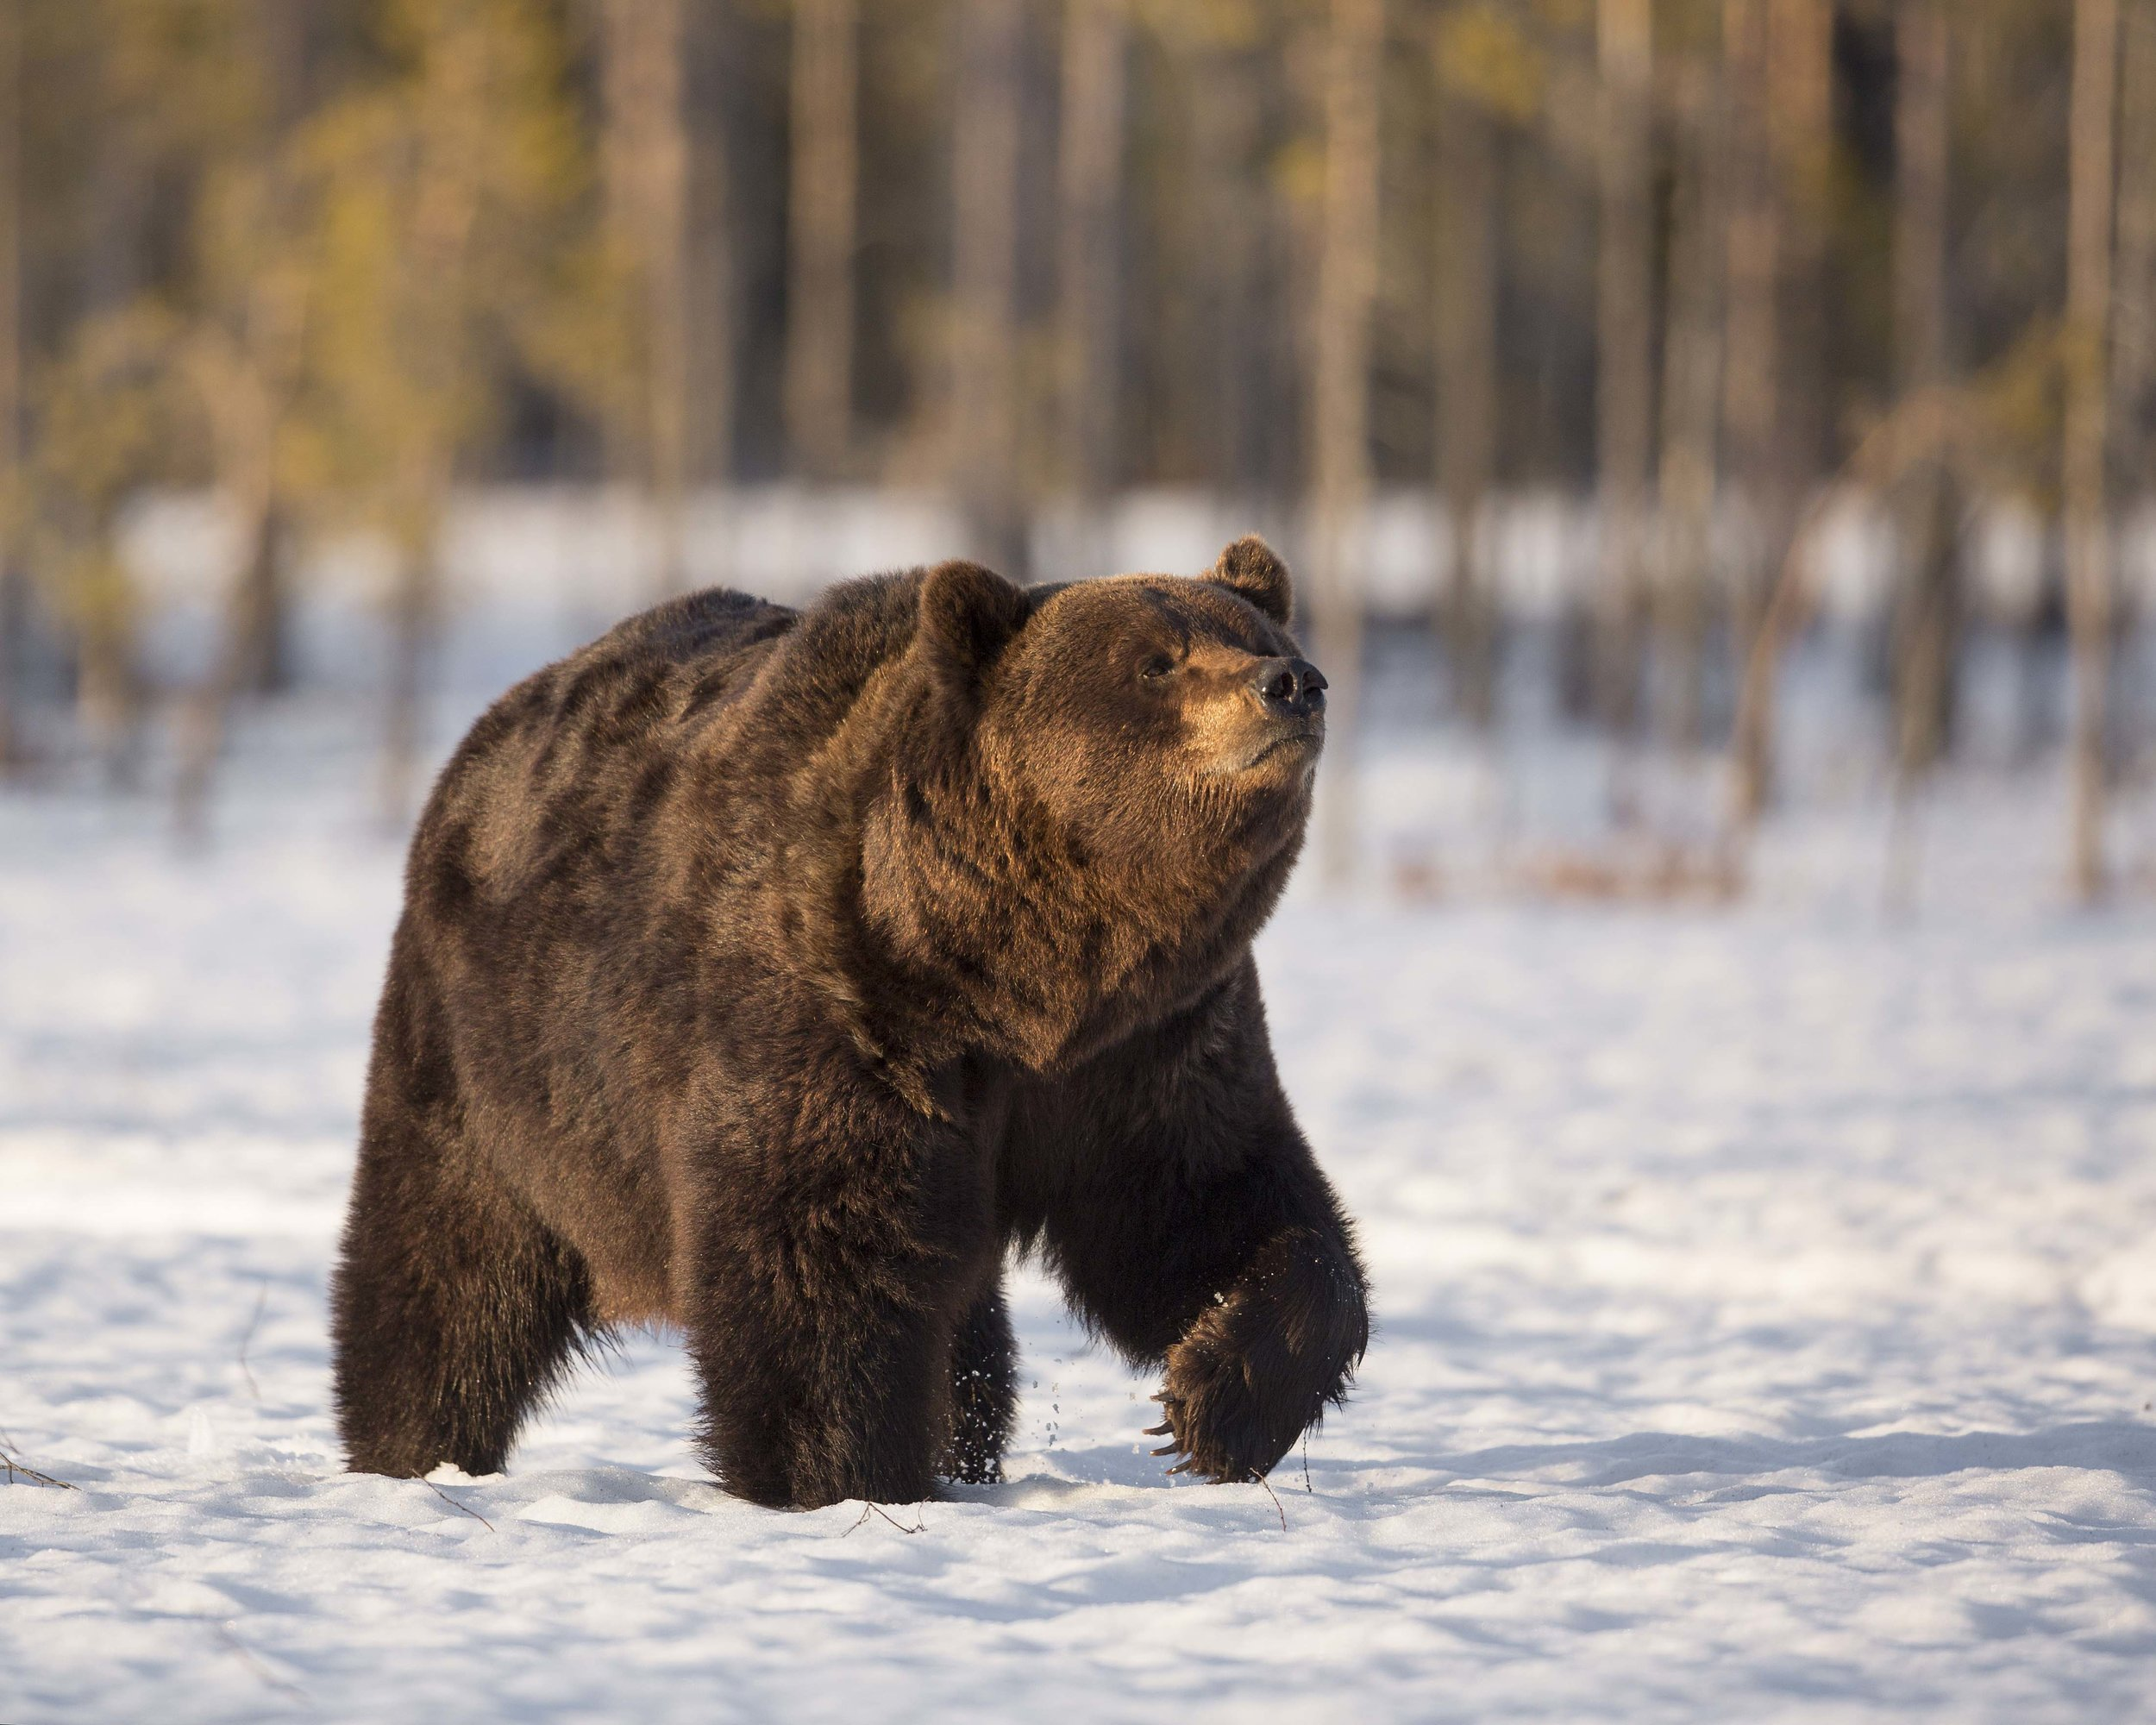 The large male bear smells the air in some lovely evening light.